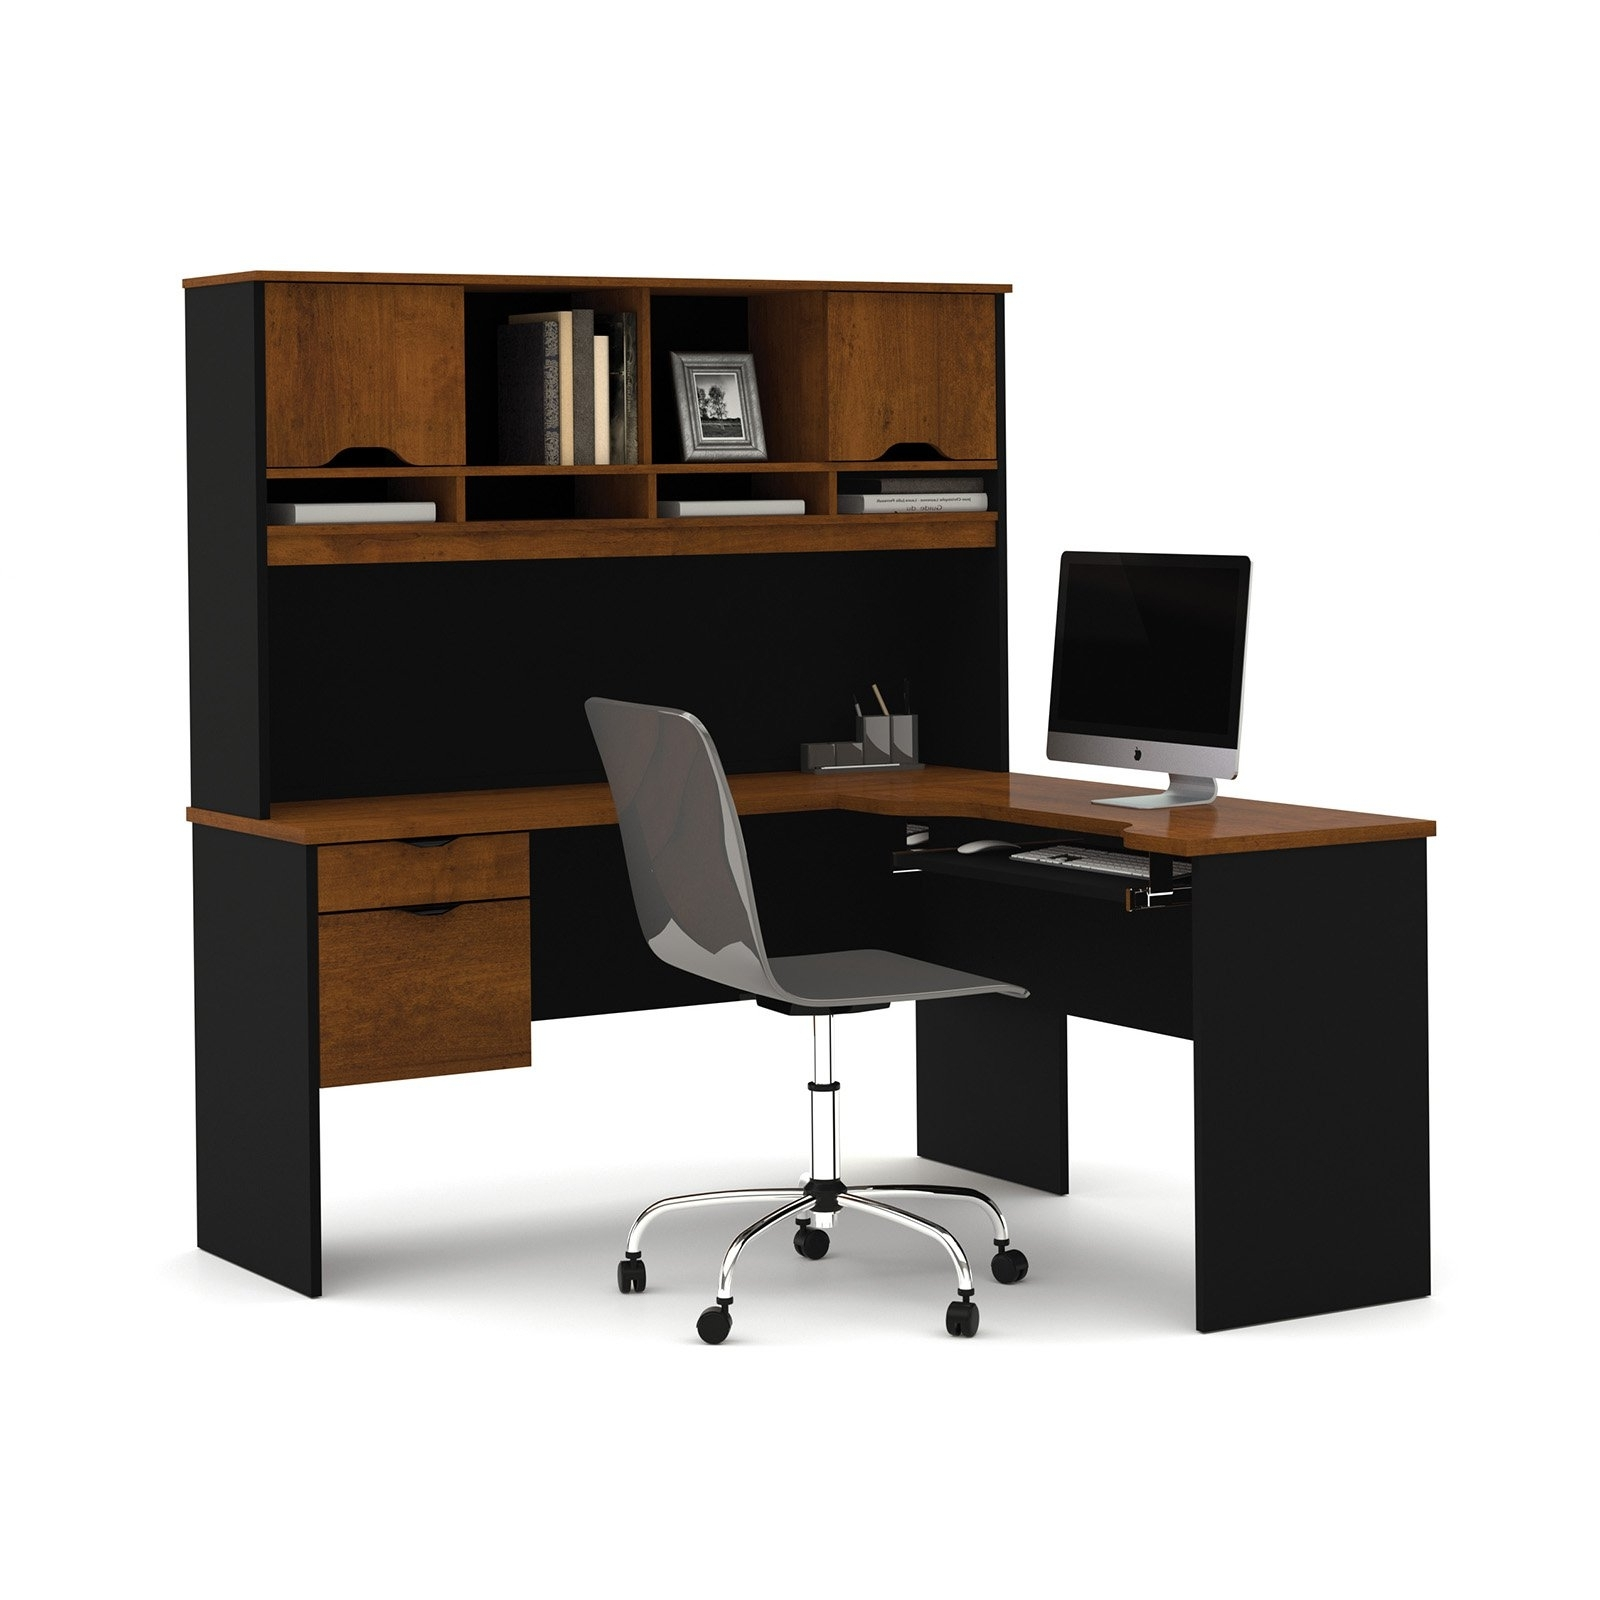 2018 Bestar Innova L Shape Computer Desk – Walmart With Brown Computer Desks (View 8 of 20)